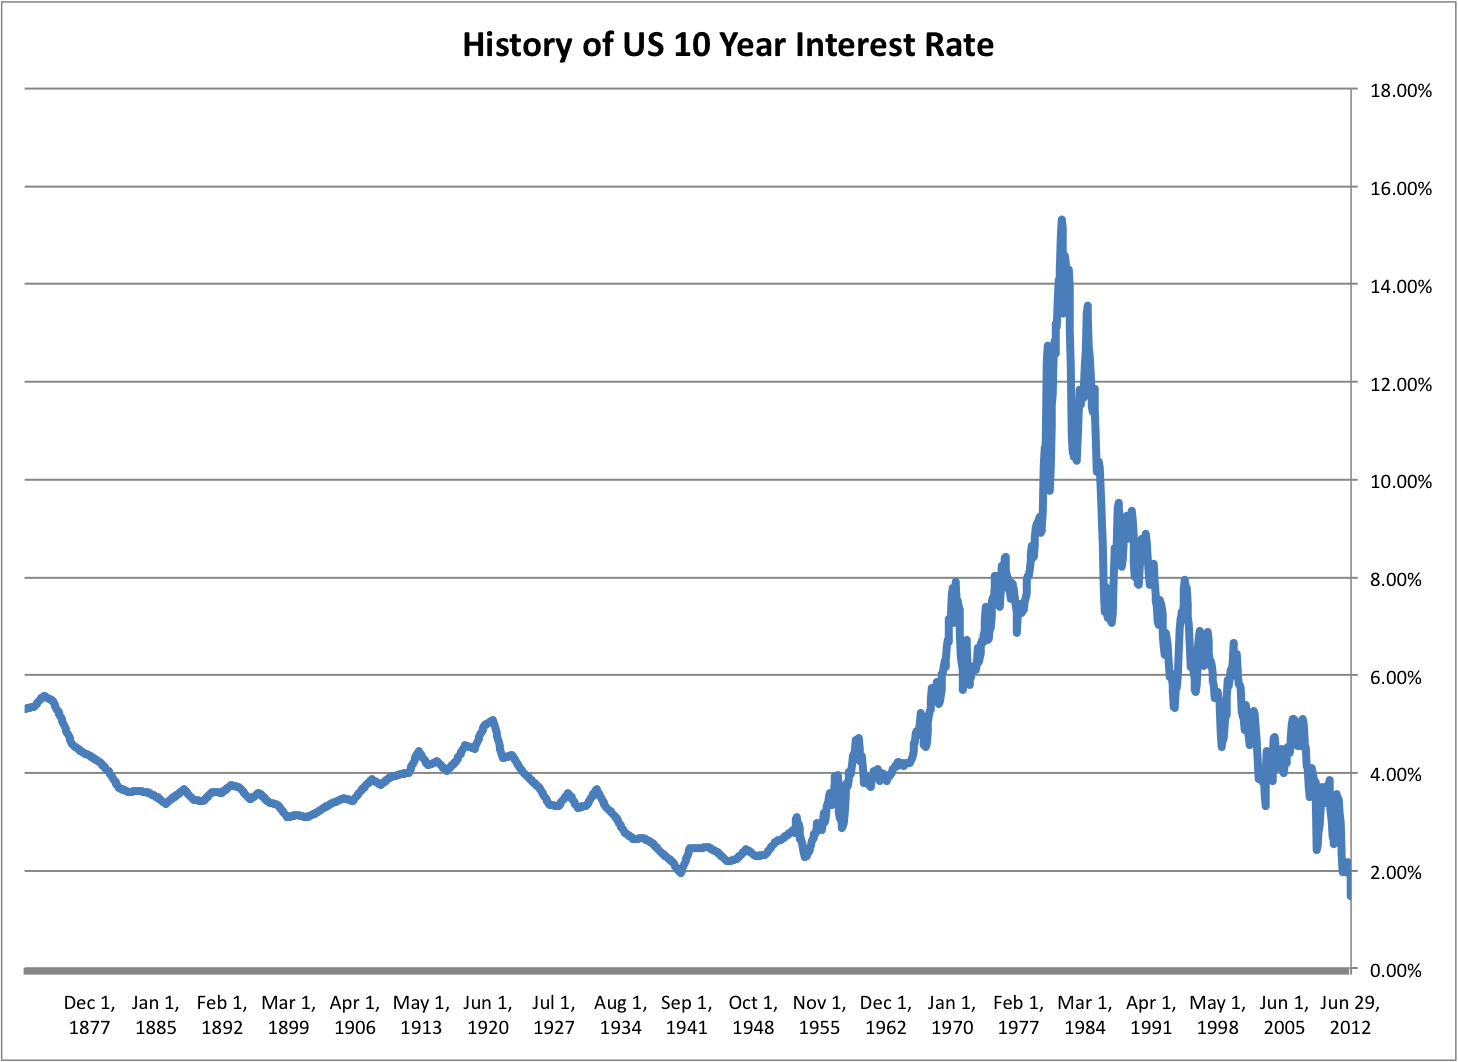 Avondale asset management 10 year treasury yield since 1877